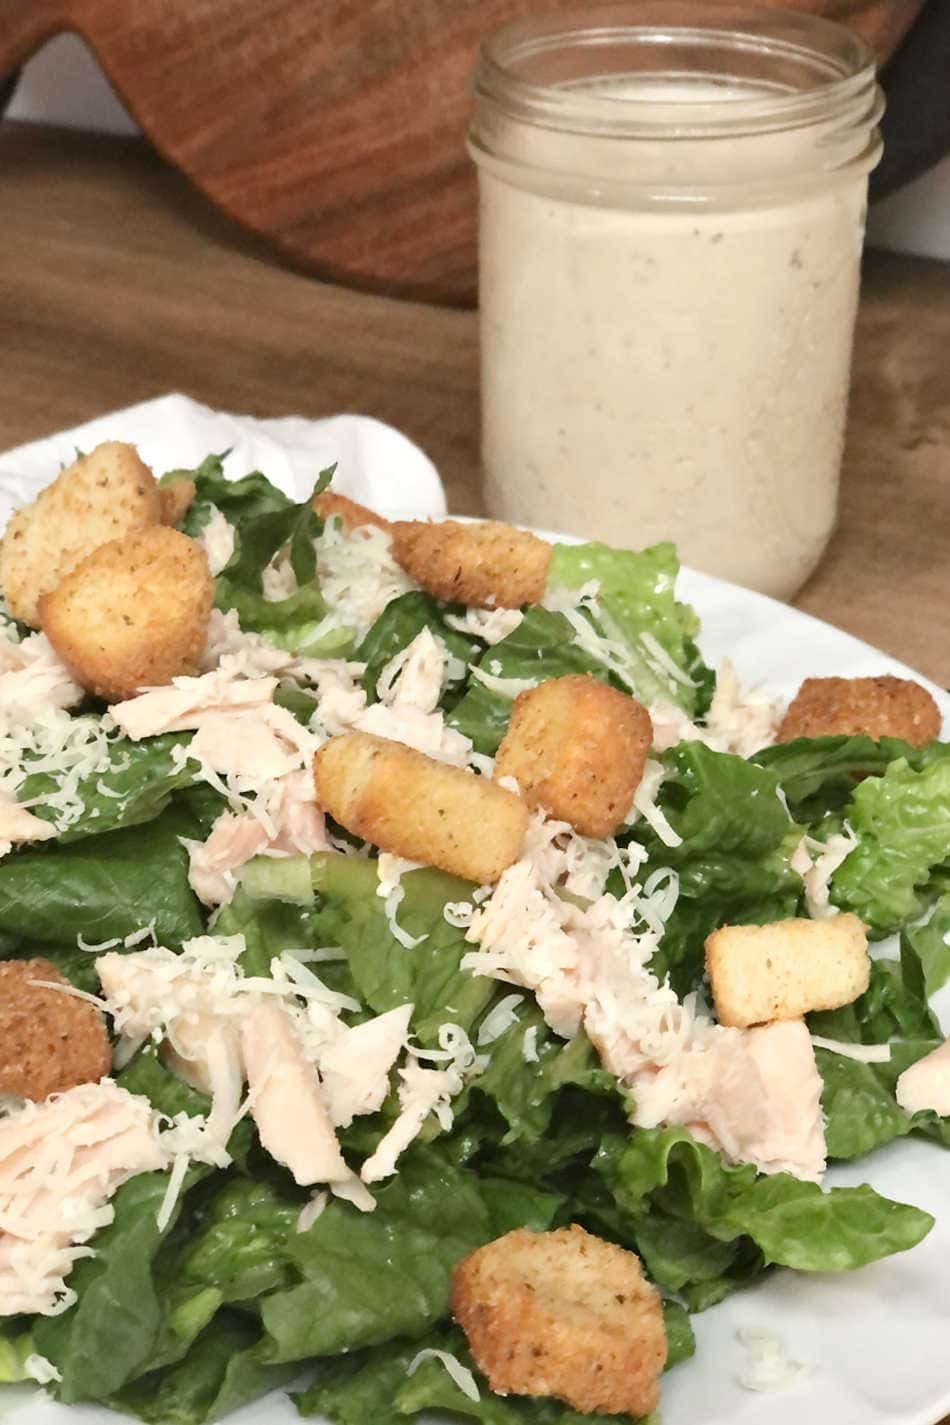 chicken Caesar salad and homemade (anchovy-free) dressing on kitchen counter